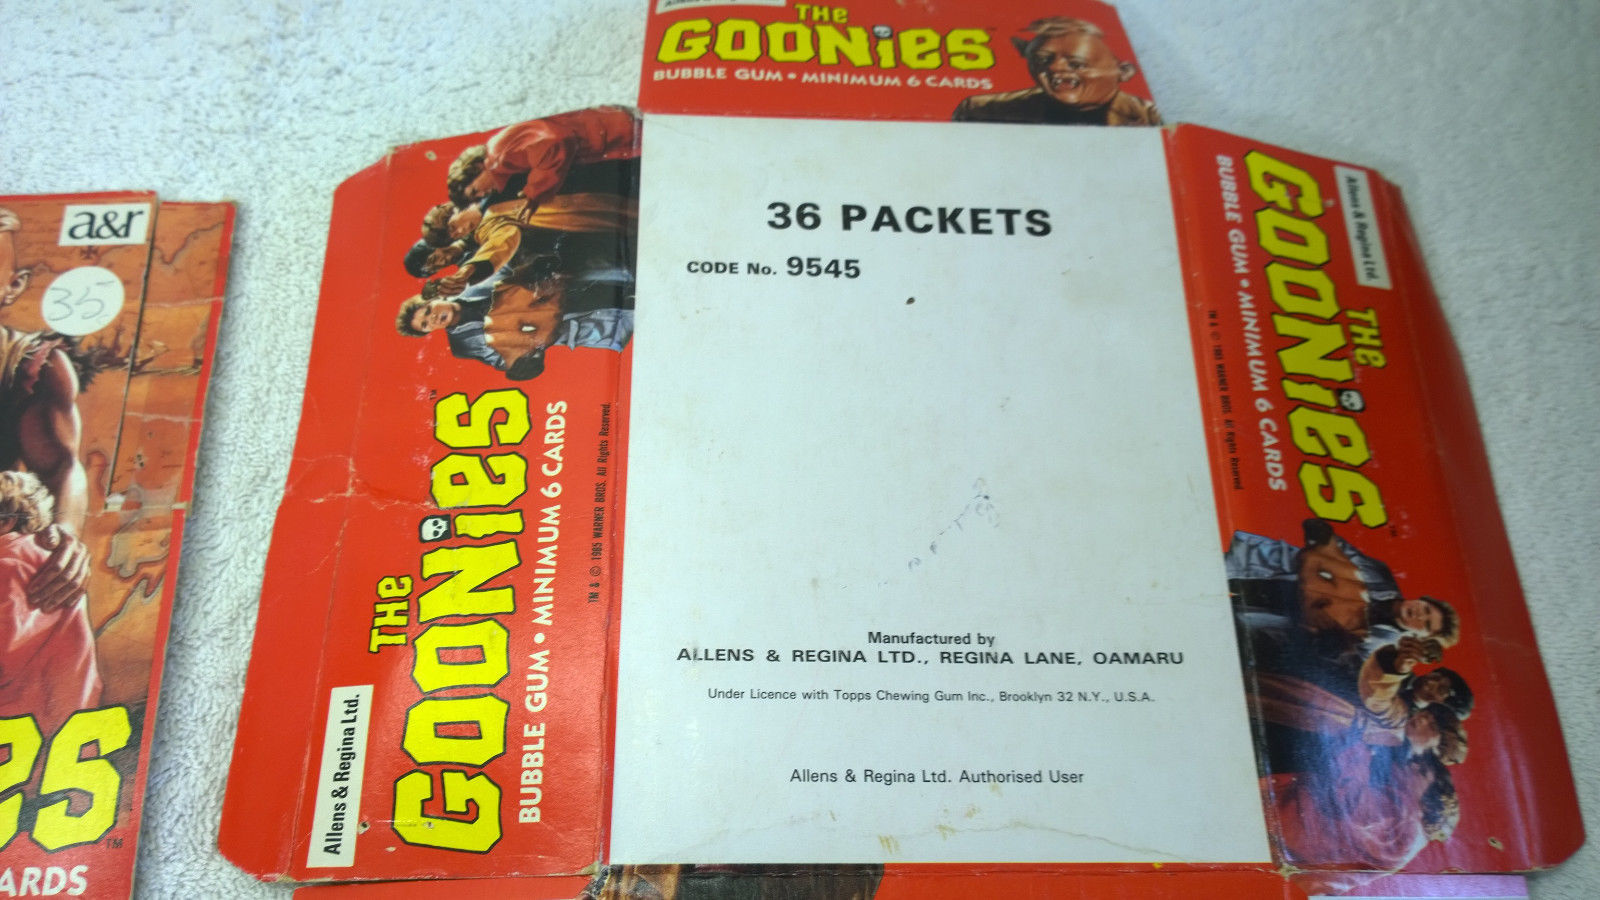 1985 Goonies Trading Card Set Foreign Allens & Regina New Zealand + Counter Box